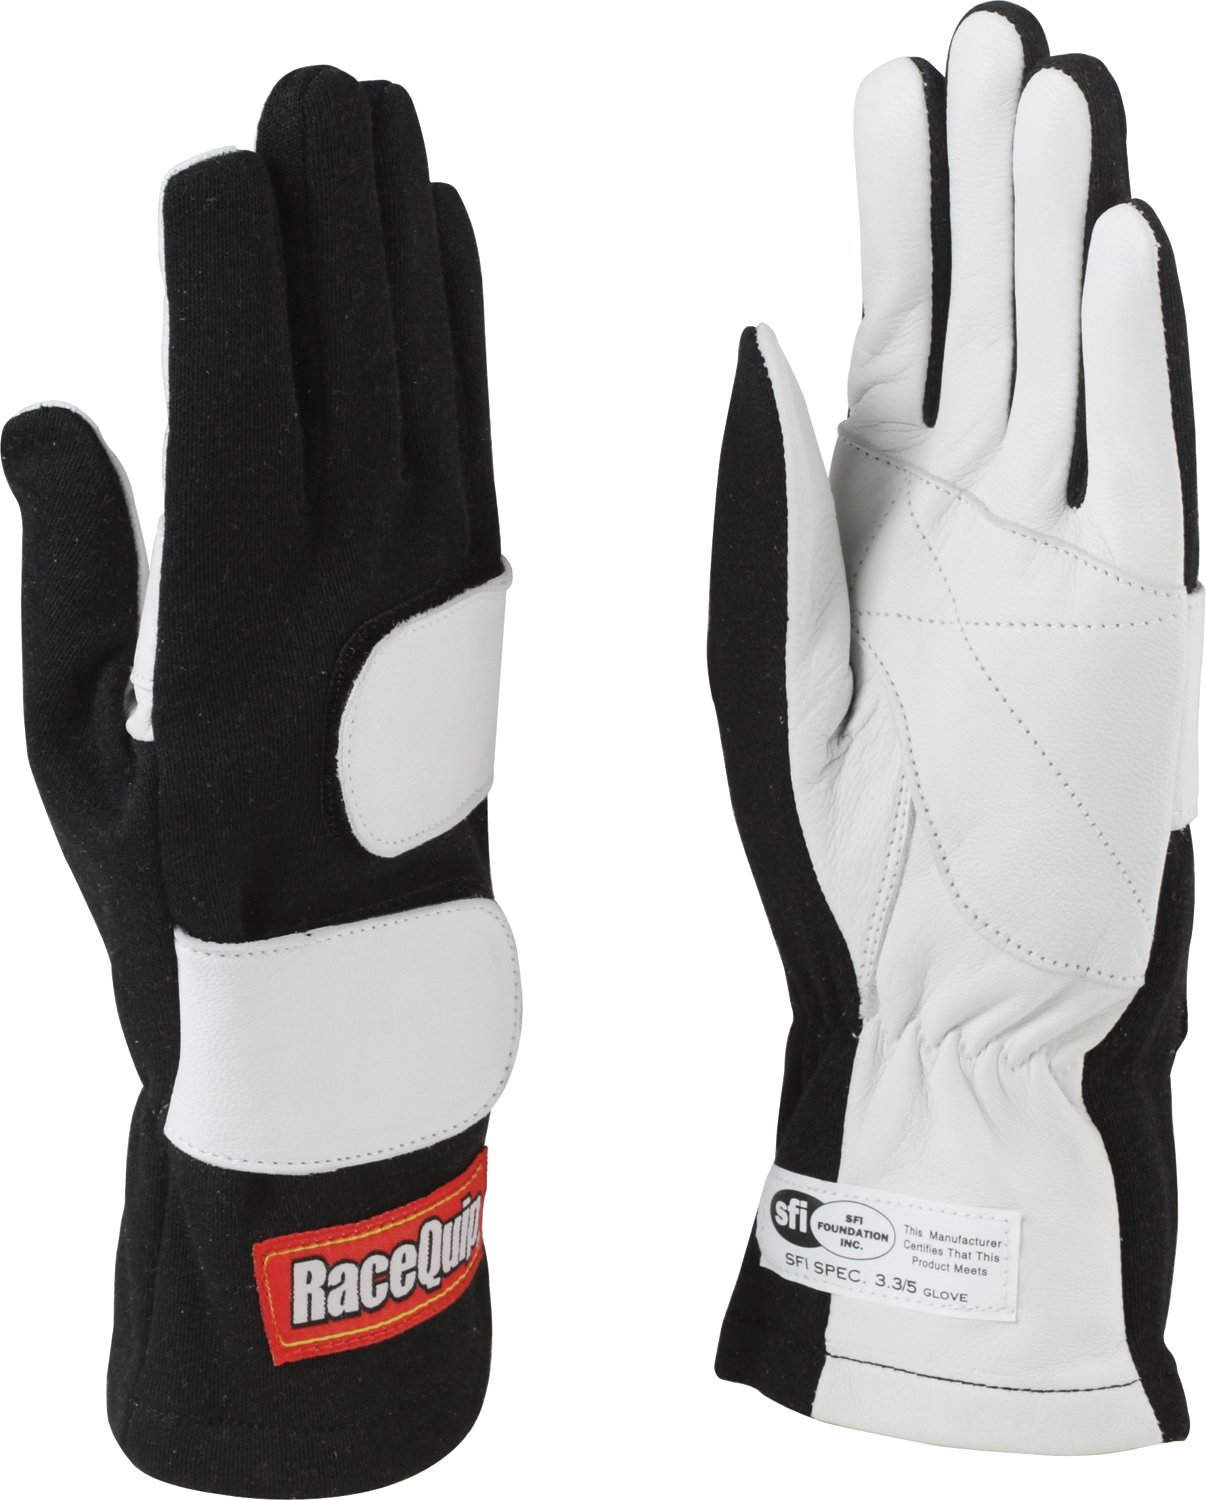 RaceQuip 312003 Mod Series Medium Black SFI 3.3/5 Double Layer Driving Gloves